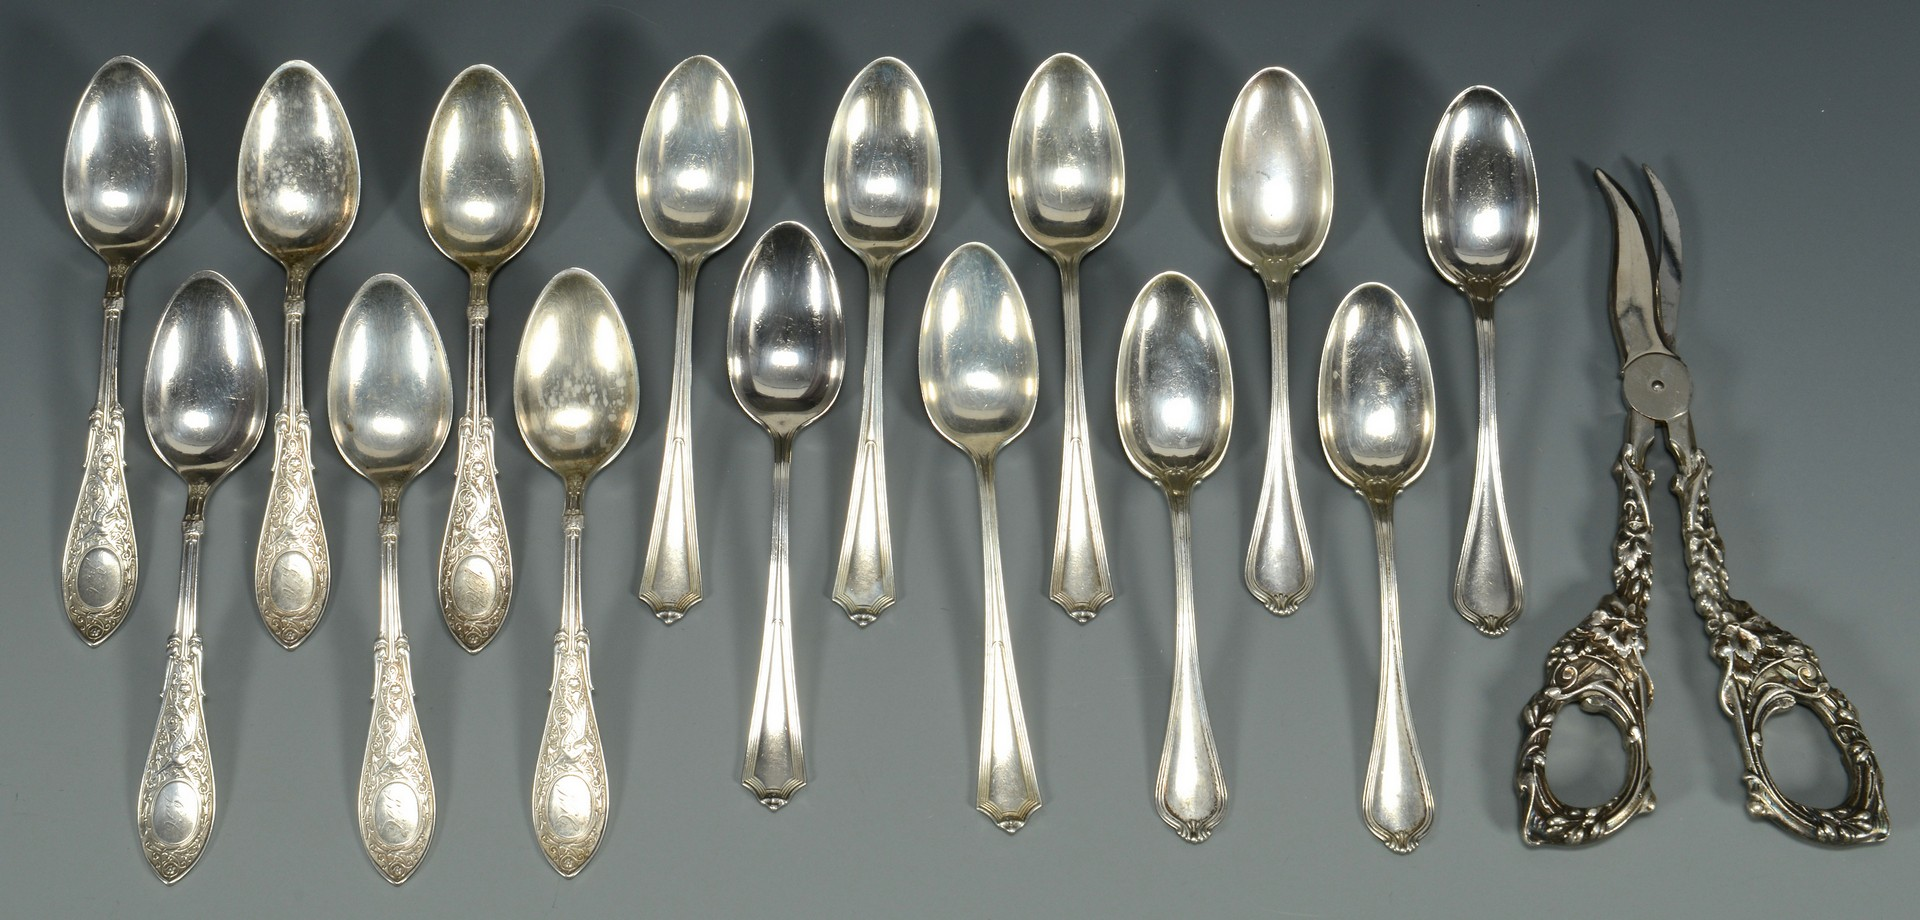 Lot 684: Grouping of Sterling Silver, 31 pcs.